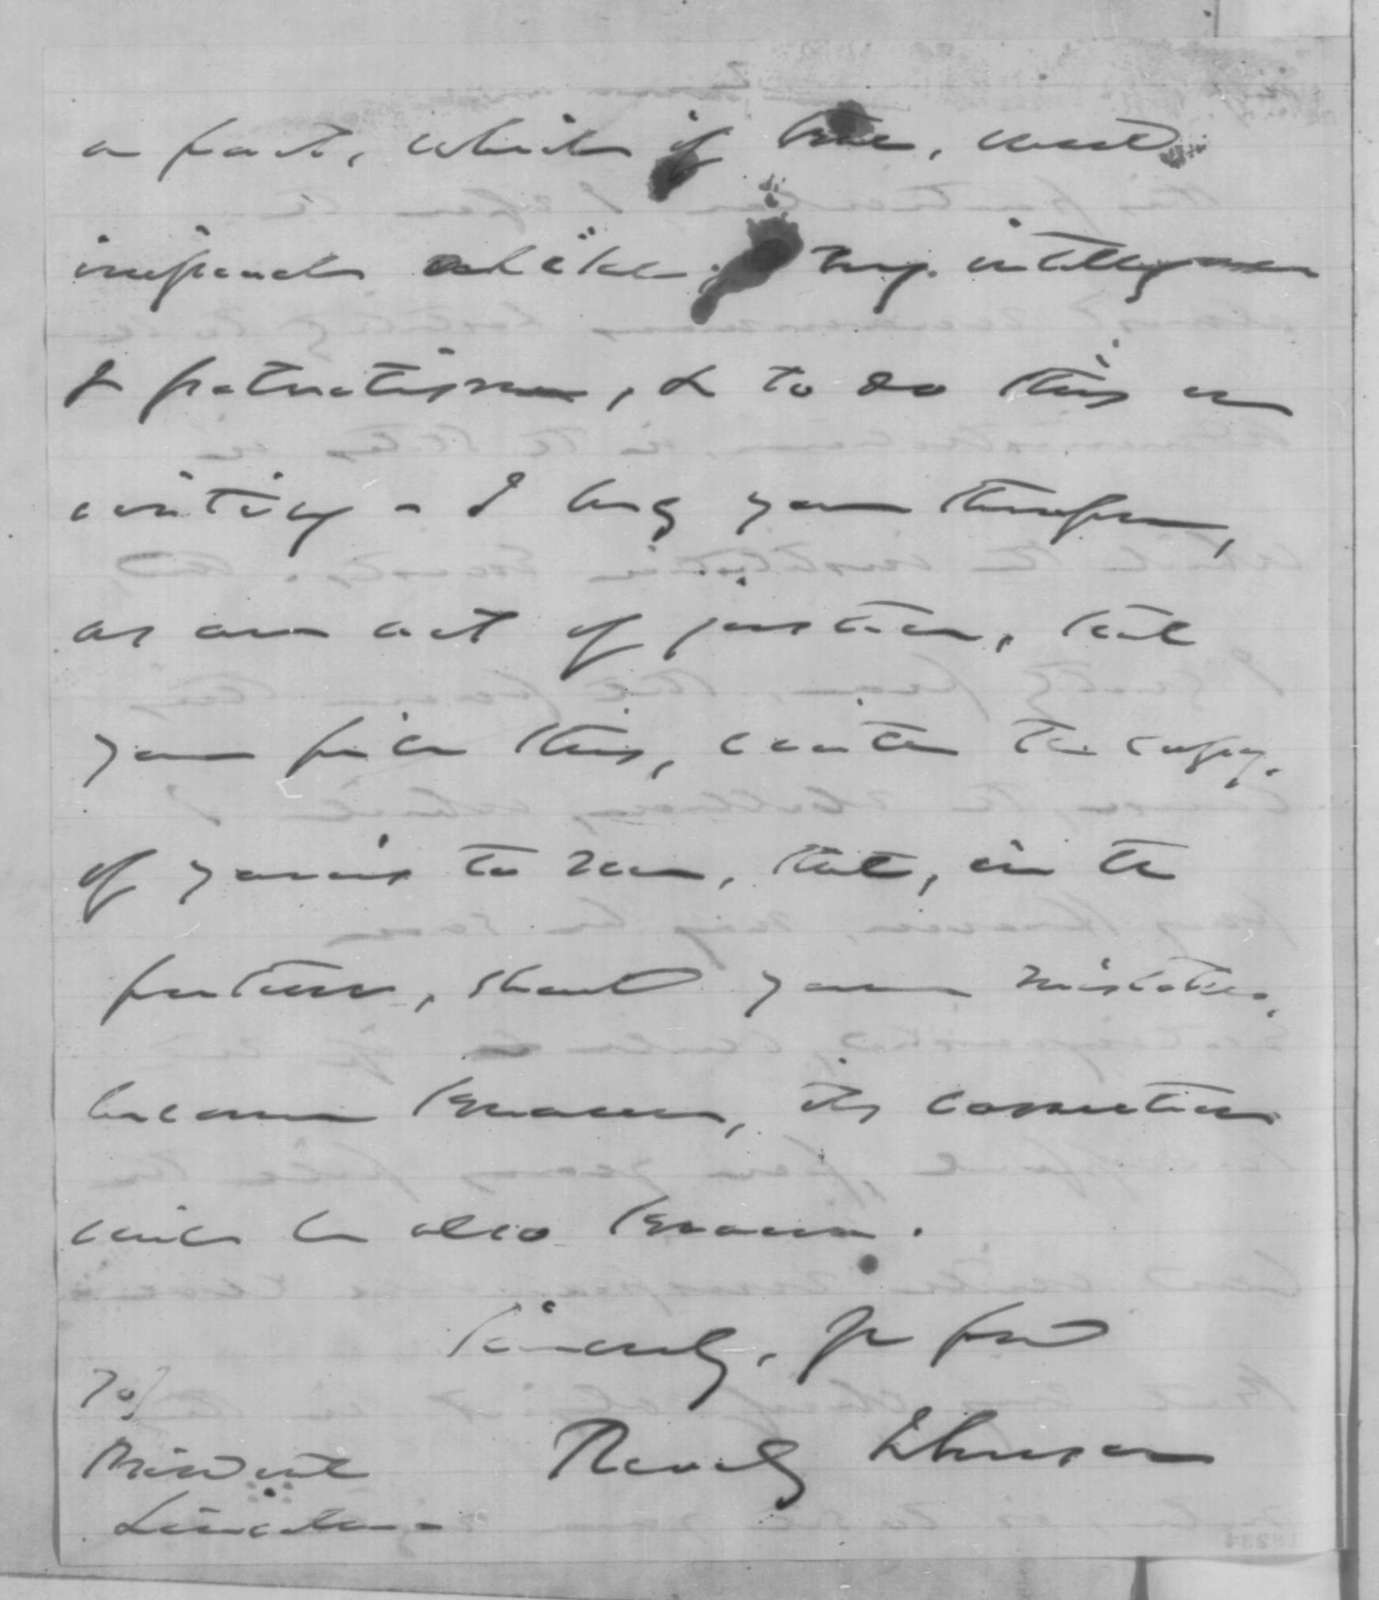 Reverdy Johnson to Abraham Lincoln, Friday, September 05, 1862  (Response to Lincoln's letter of July 26)